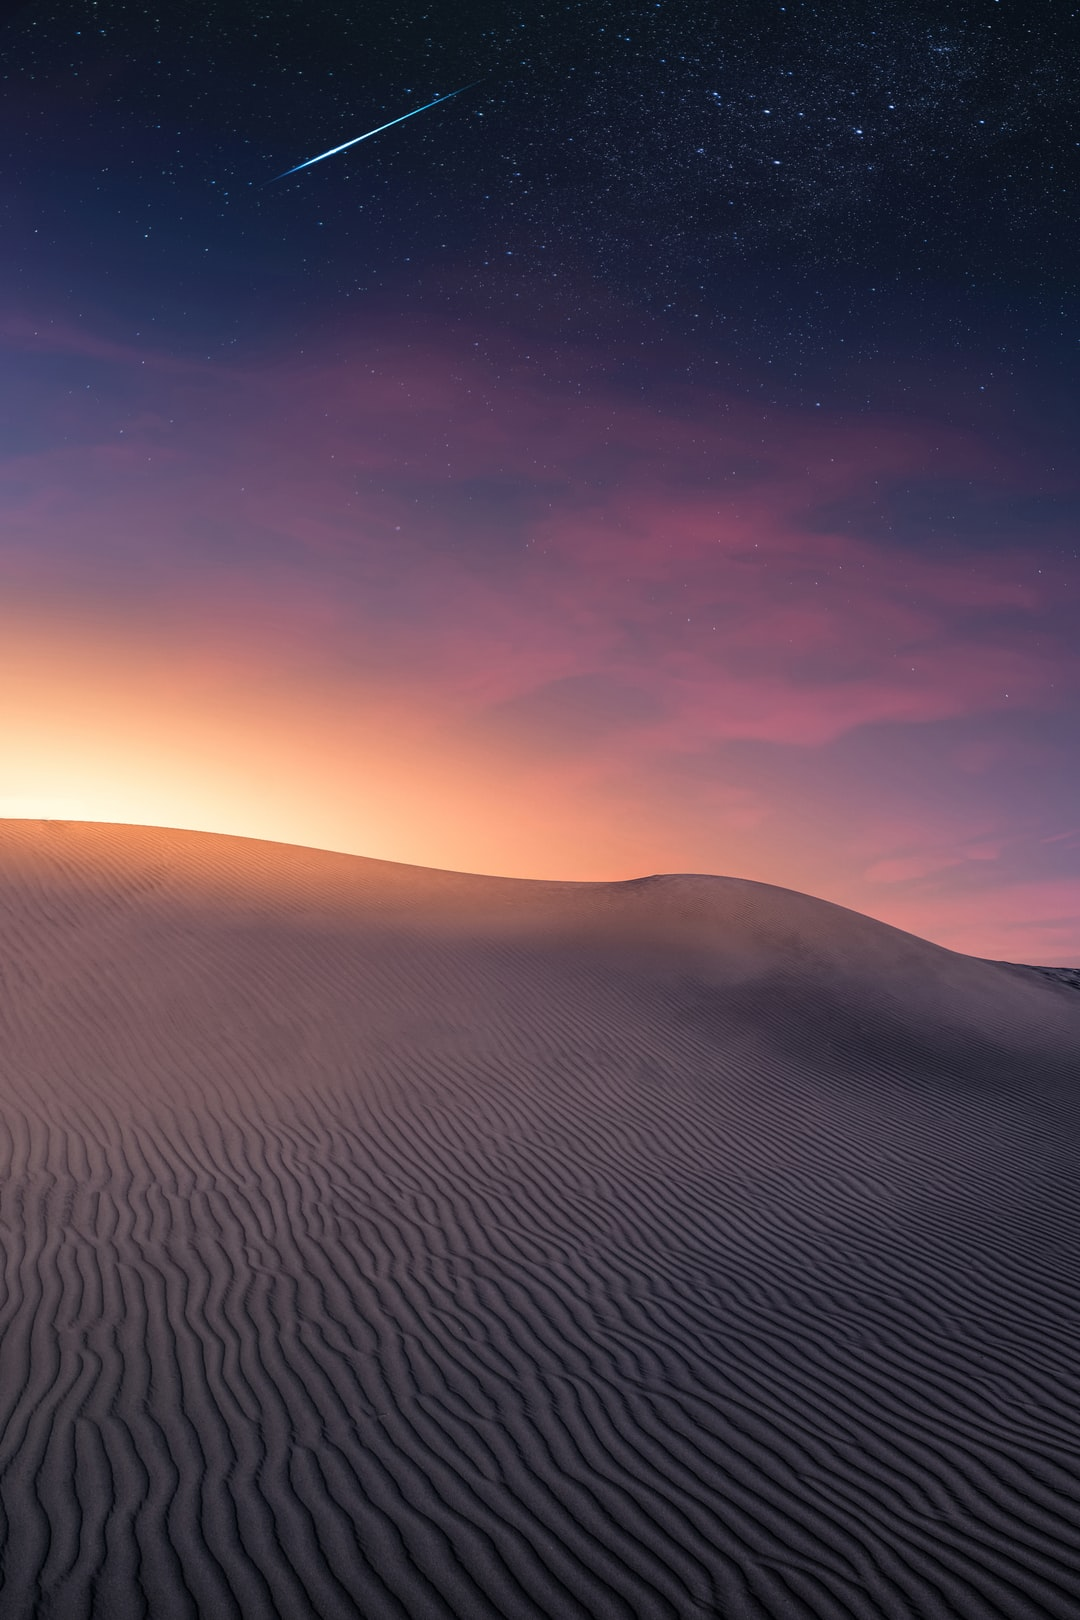 An image created with Adobe Photoshop starting from a photo taken in the dunes of a desert to the Canary Islands.